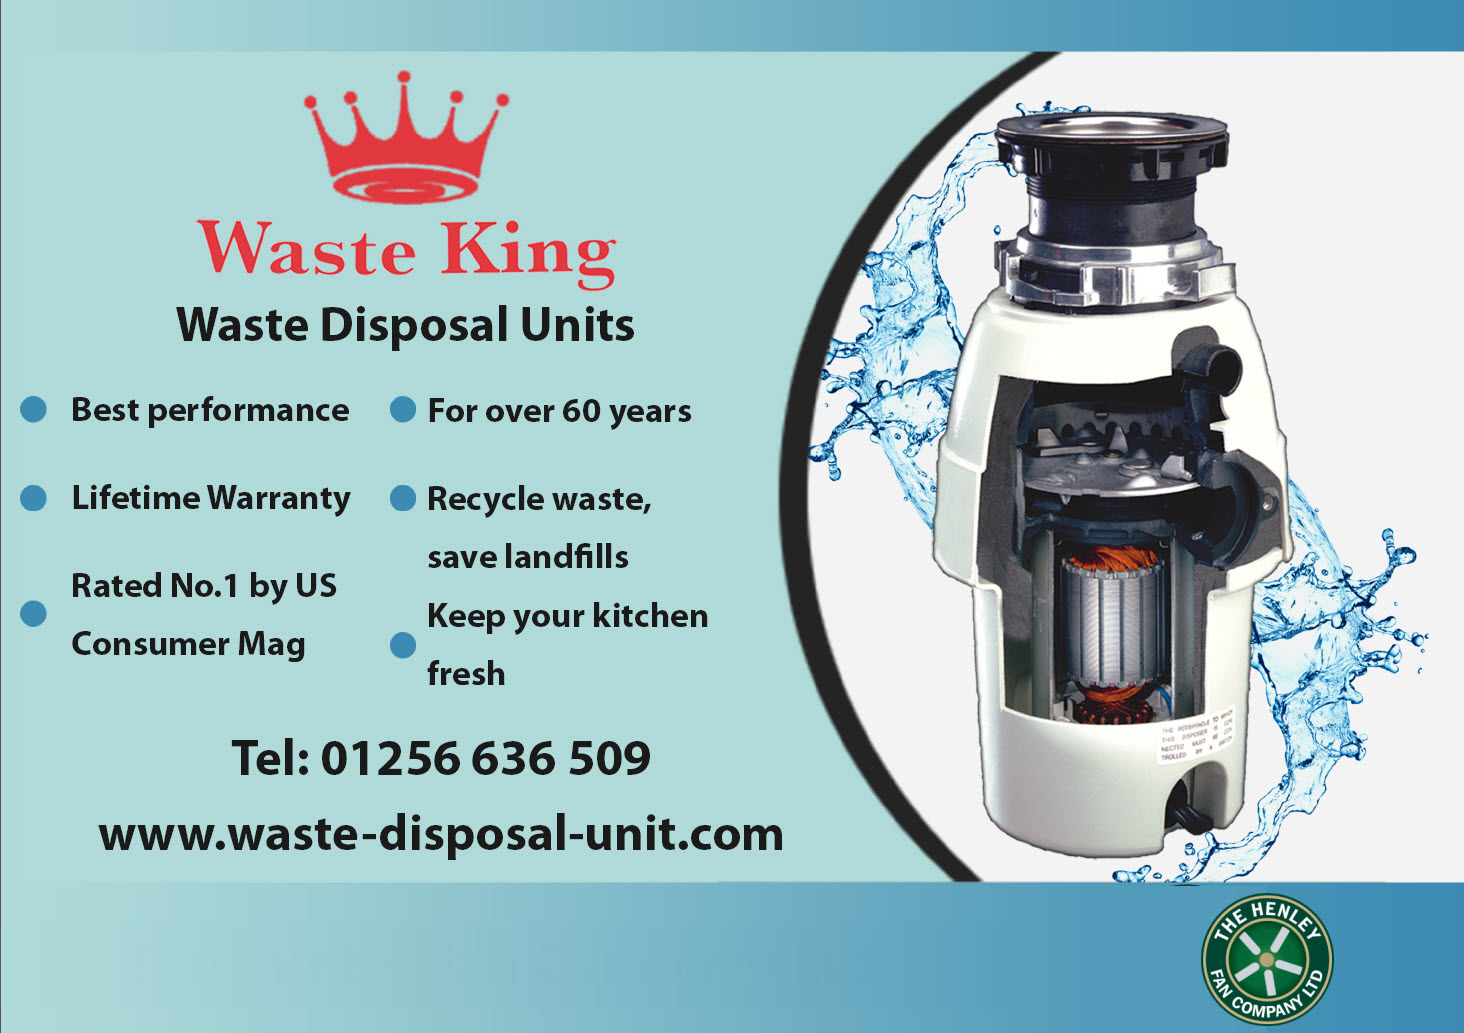 Waste King Price Promotion